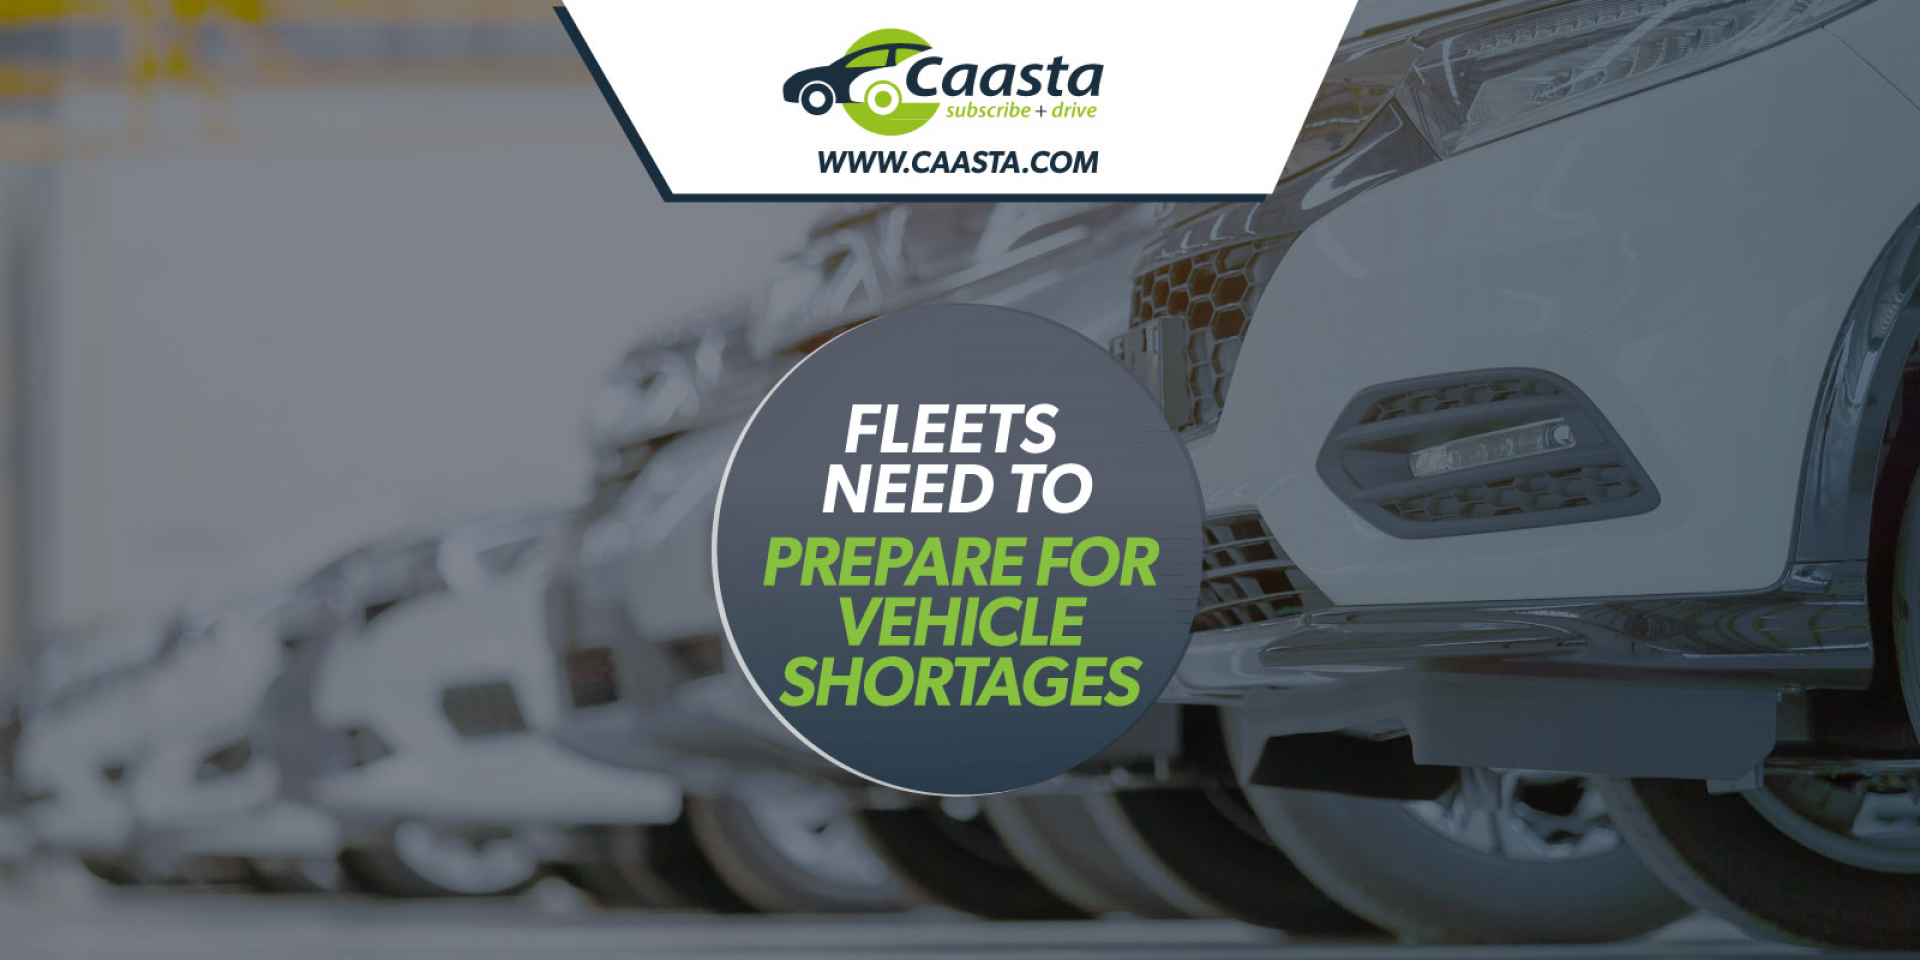 Fleets need to prepare for vehicle shortages